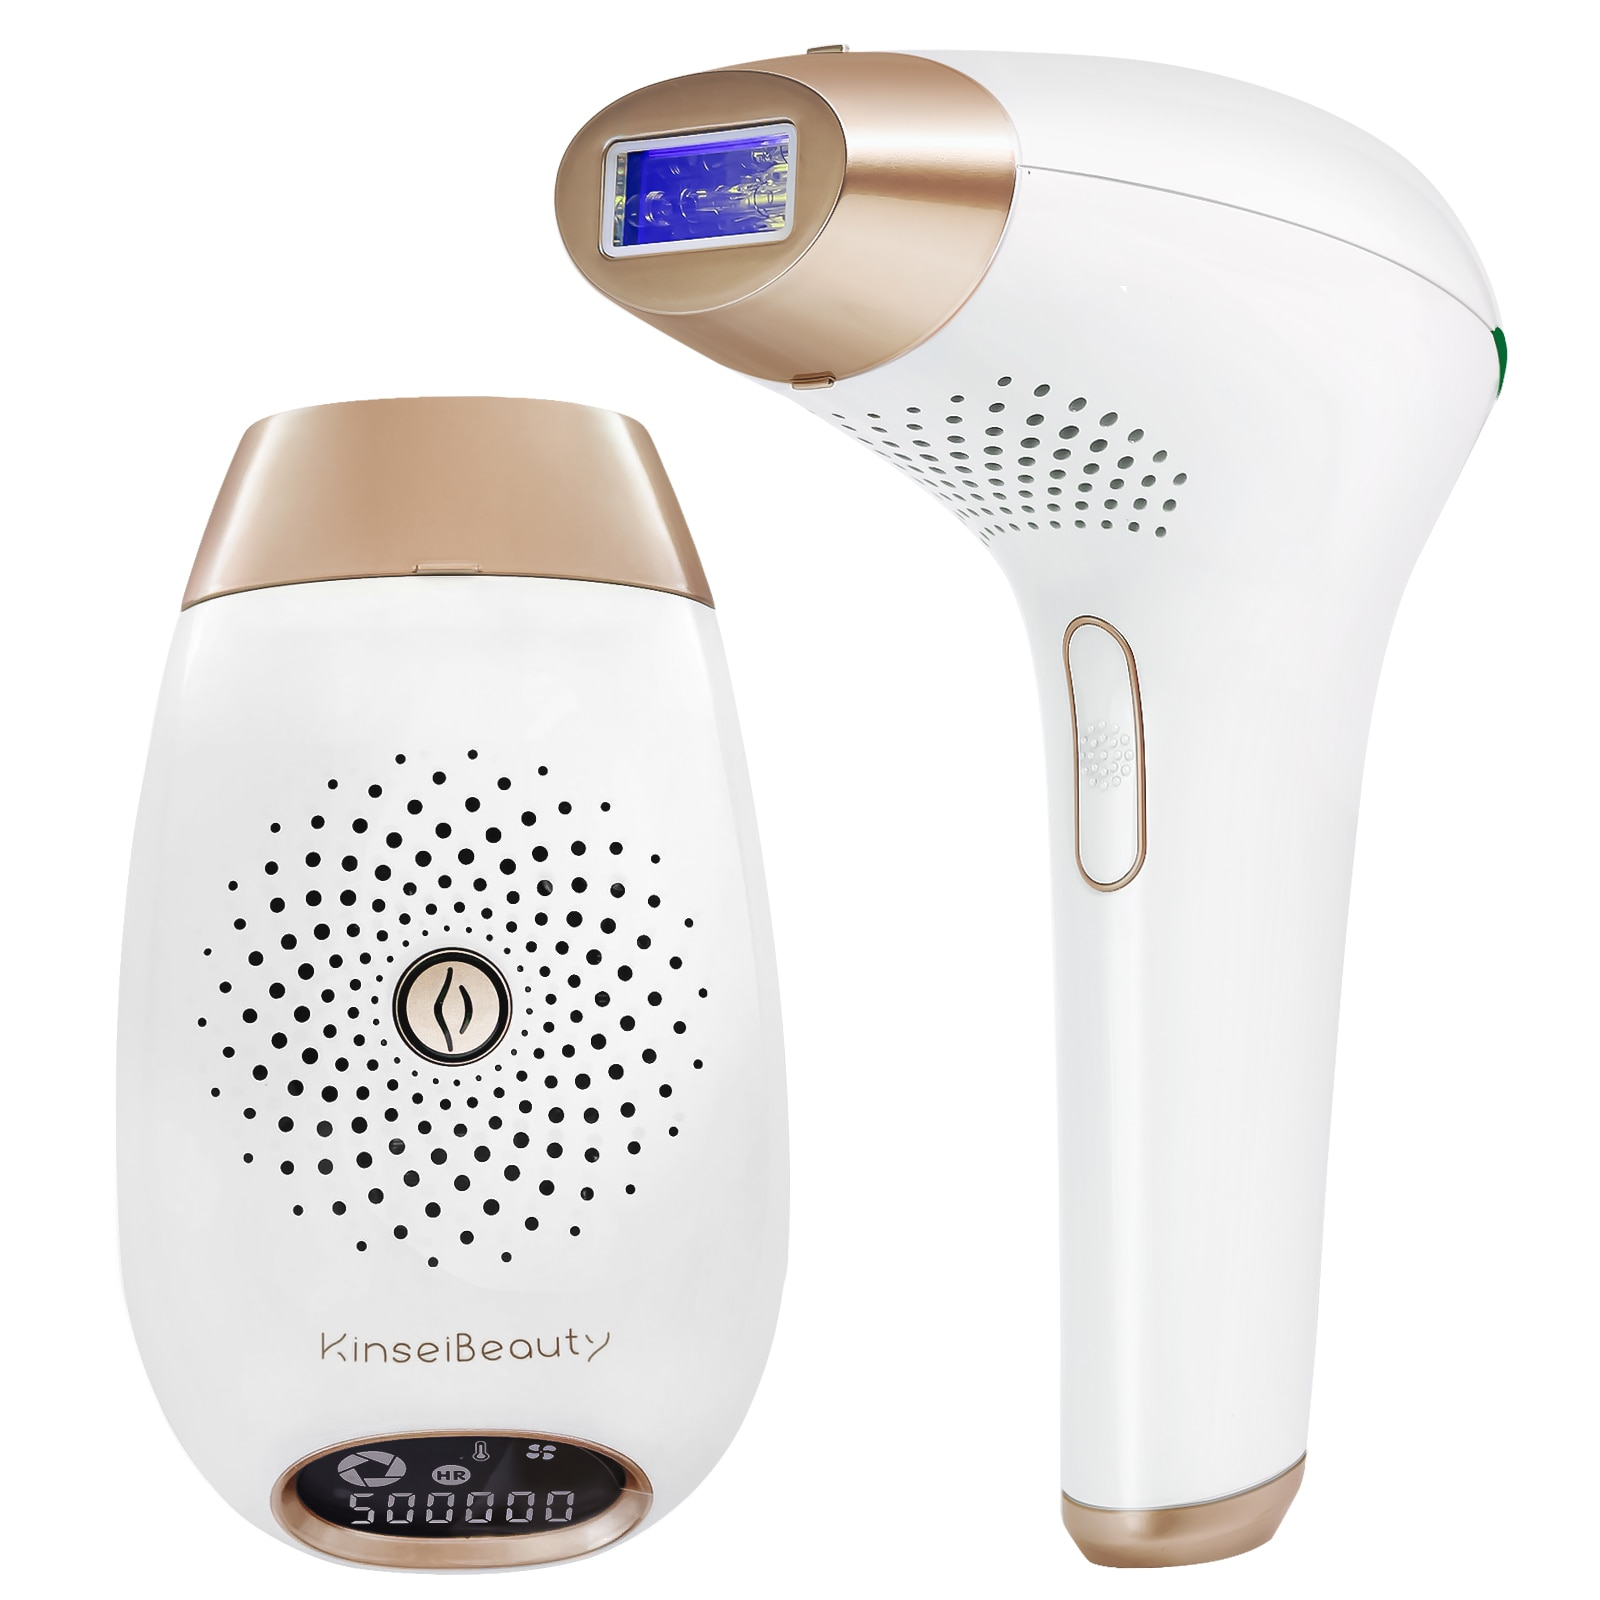 Laser Hair Removal 500000 Flashes MELSYA IPL Hair removal Epilator LCD Display Laser Permanent Bikini Trimmer Electric Depilador lescolton 700000 puls 3in1 ipl laser hair removal machine laser epilator hair removal permanent bikini trimmer depilador a laser